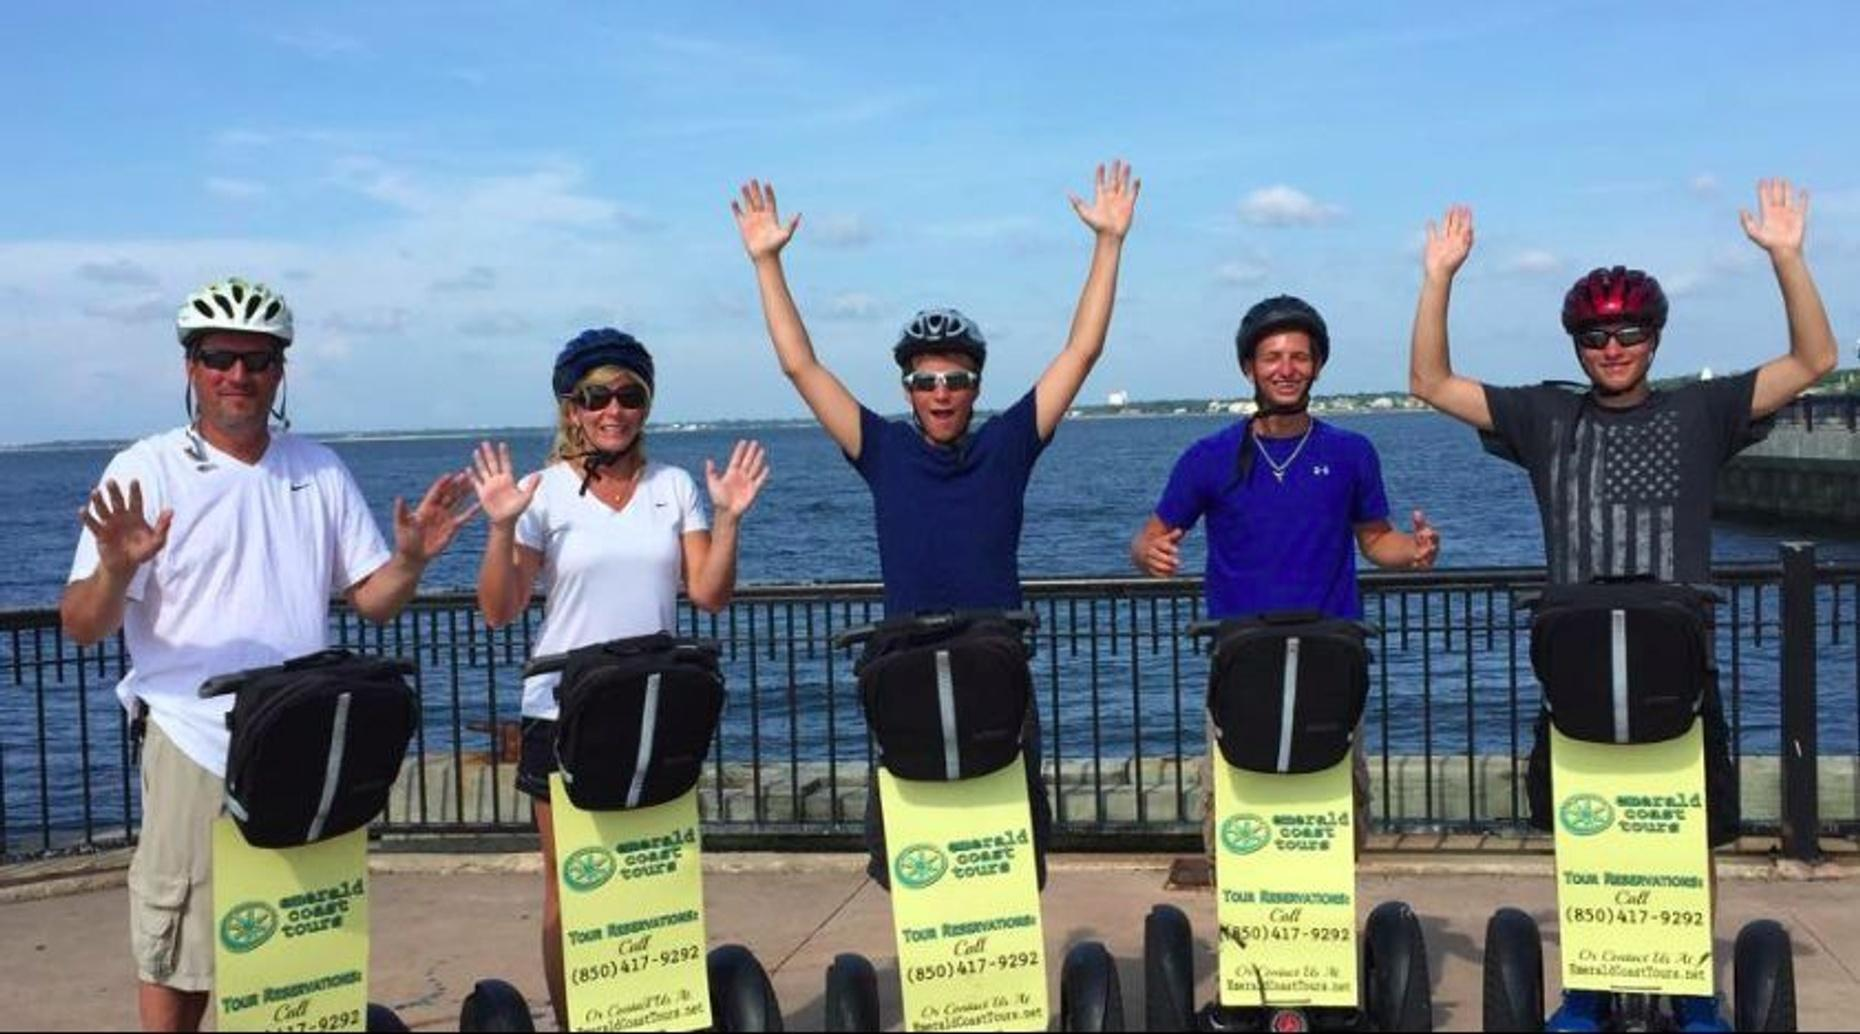 Pensacola One Hour Historical Segway Tour